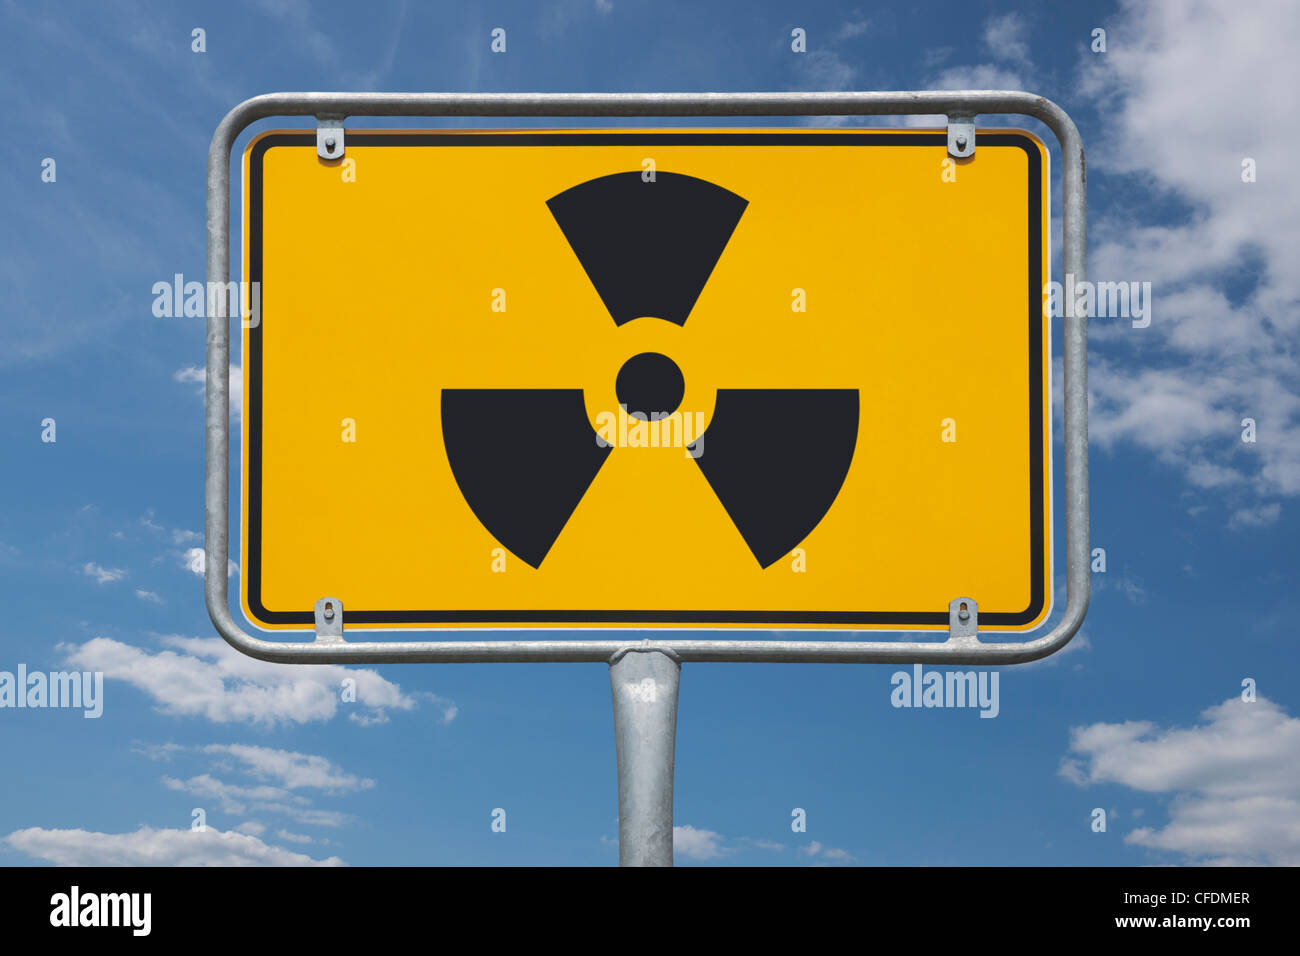 View of the entrance town sign with the symbol for radioactivity, background sky. - Stock Image